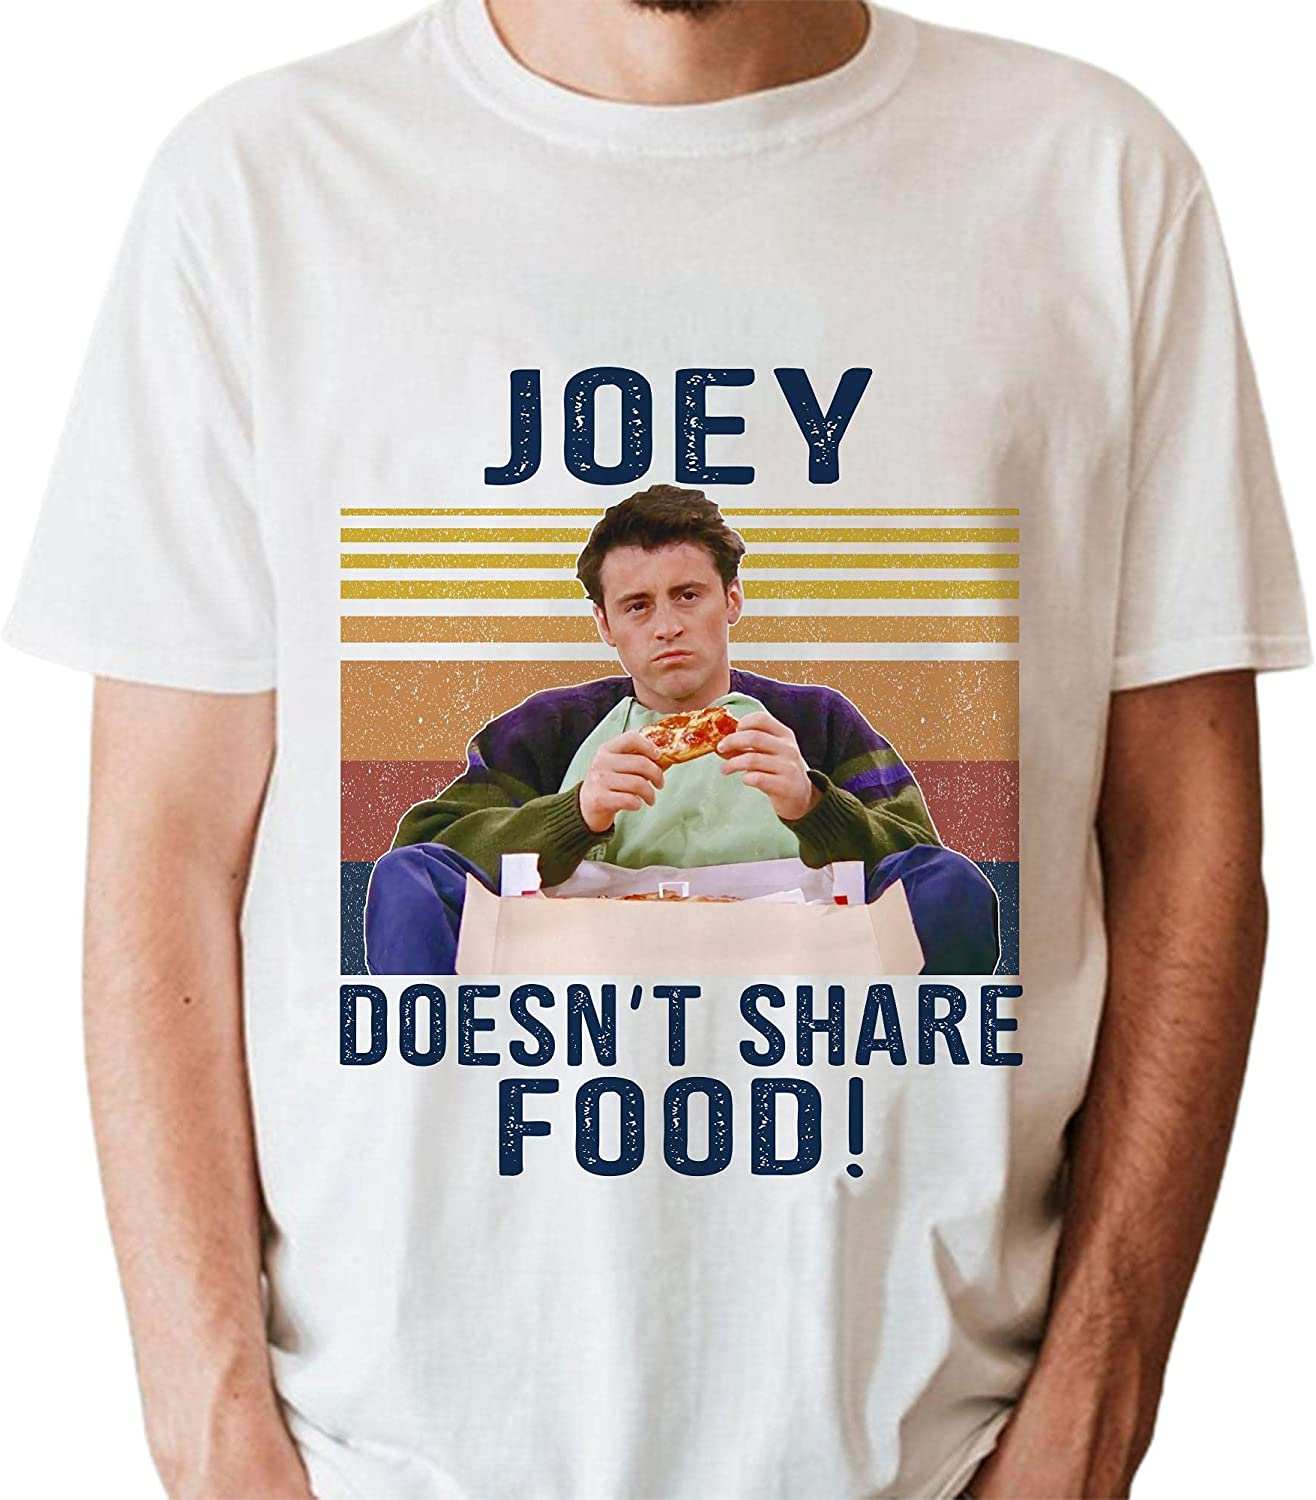 Tv Show Friends Joey Shirt Joey Doesn't Share Food T-Shirt Vintage Movie 80S Gift HS0104267